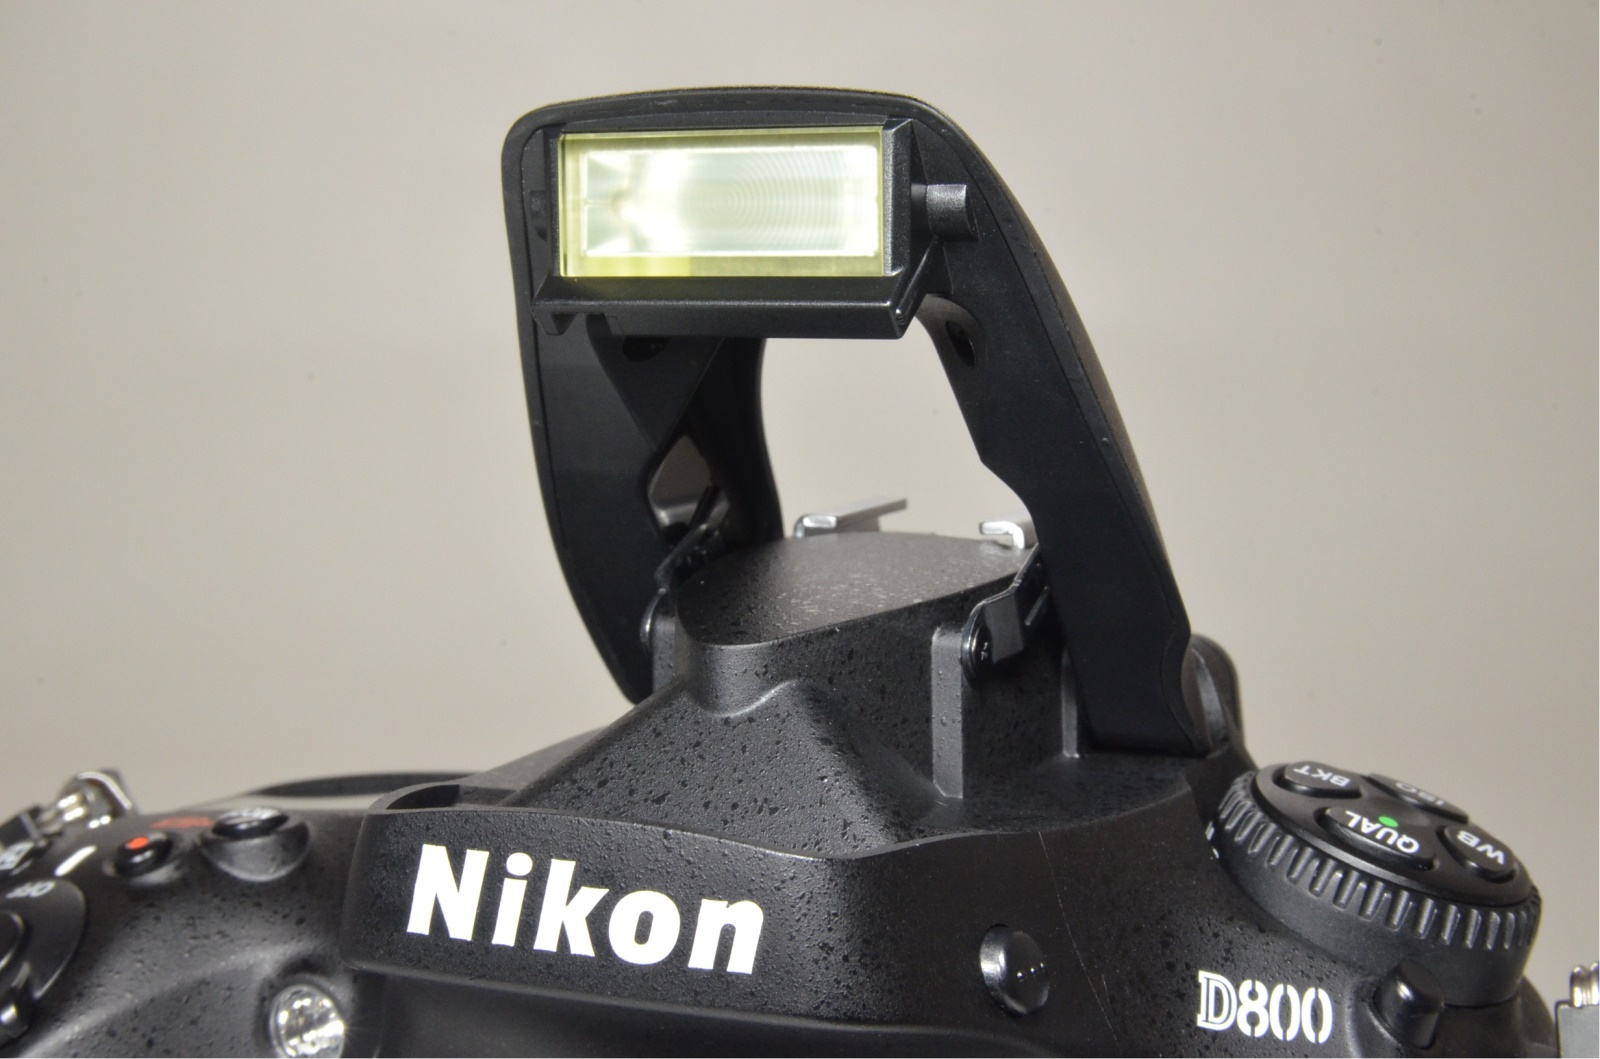 nikon d800 36.3mp digital slr camera body with english user's manual from japan